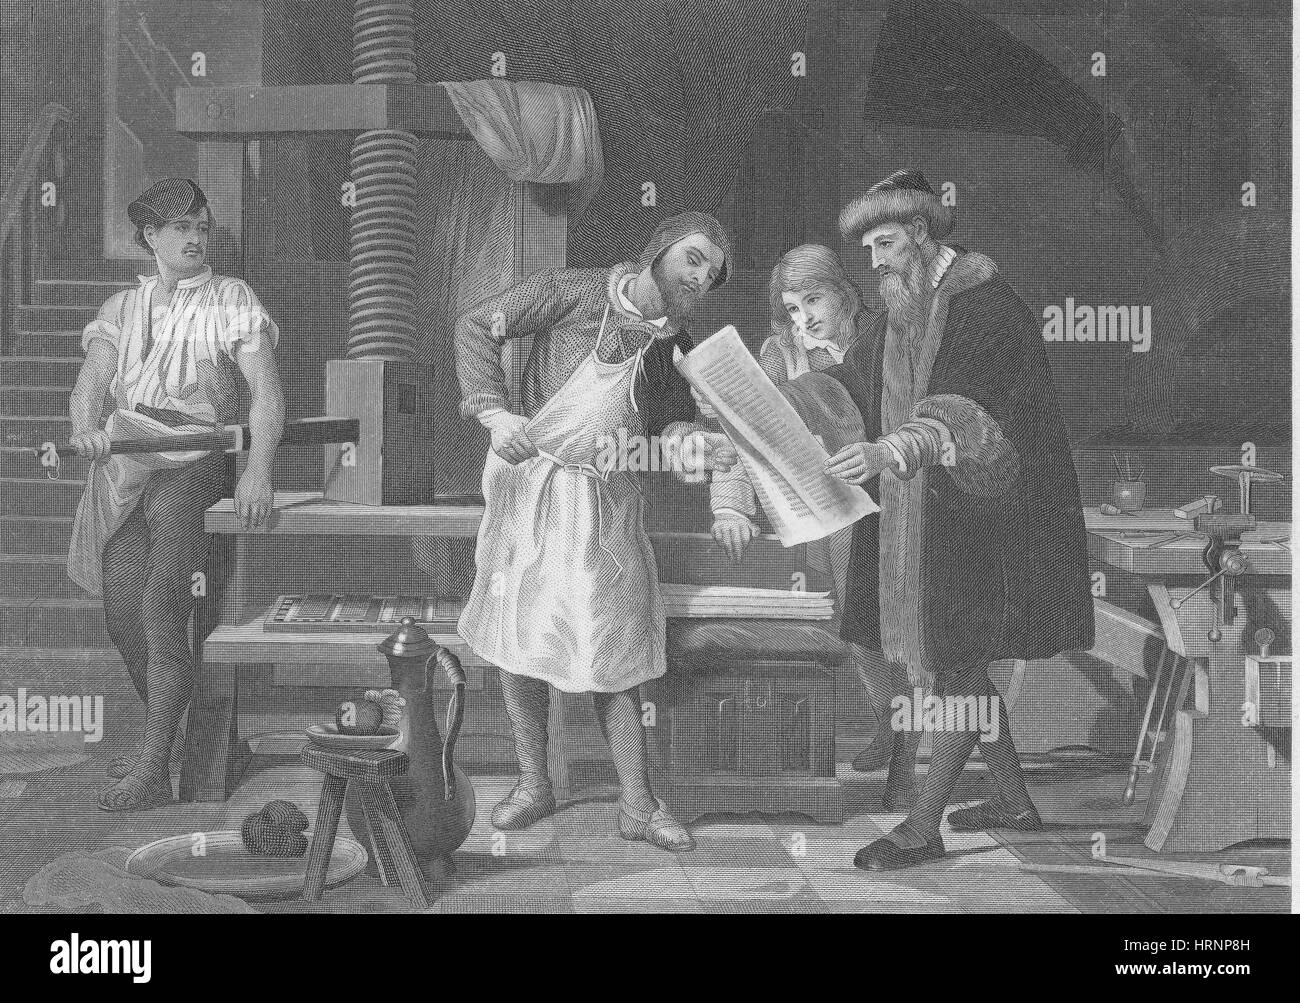 Printing Press Gutenberg Black And White Stock Photos Images Alamy Johannes Diagram German Inventor Publisher Image